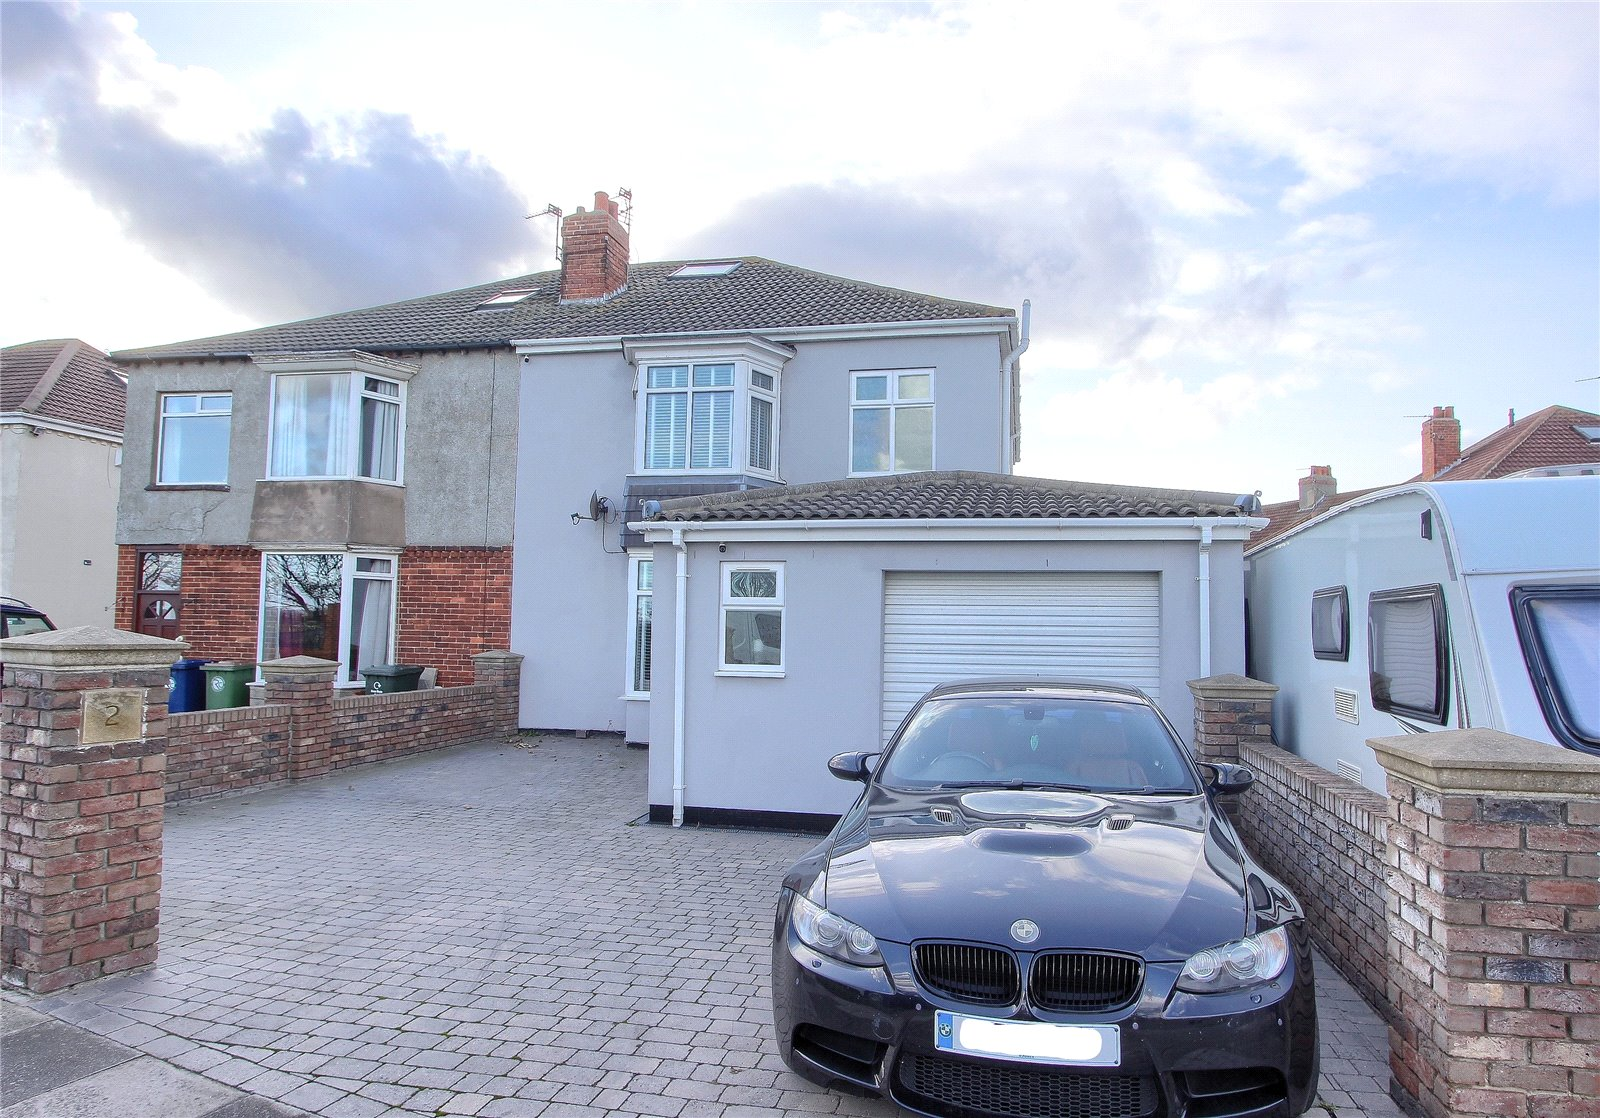 3 bed house for sale in The Crescent, Redcar  - Property Image 1